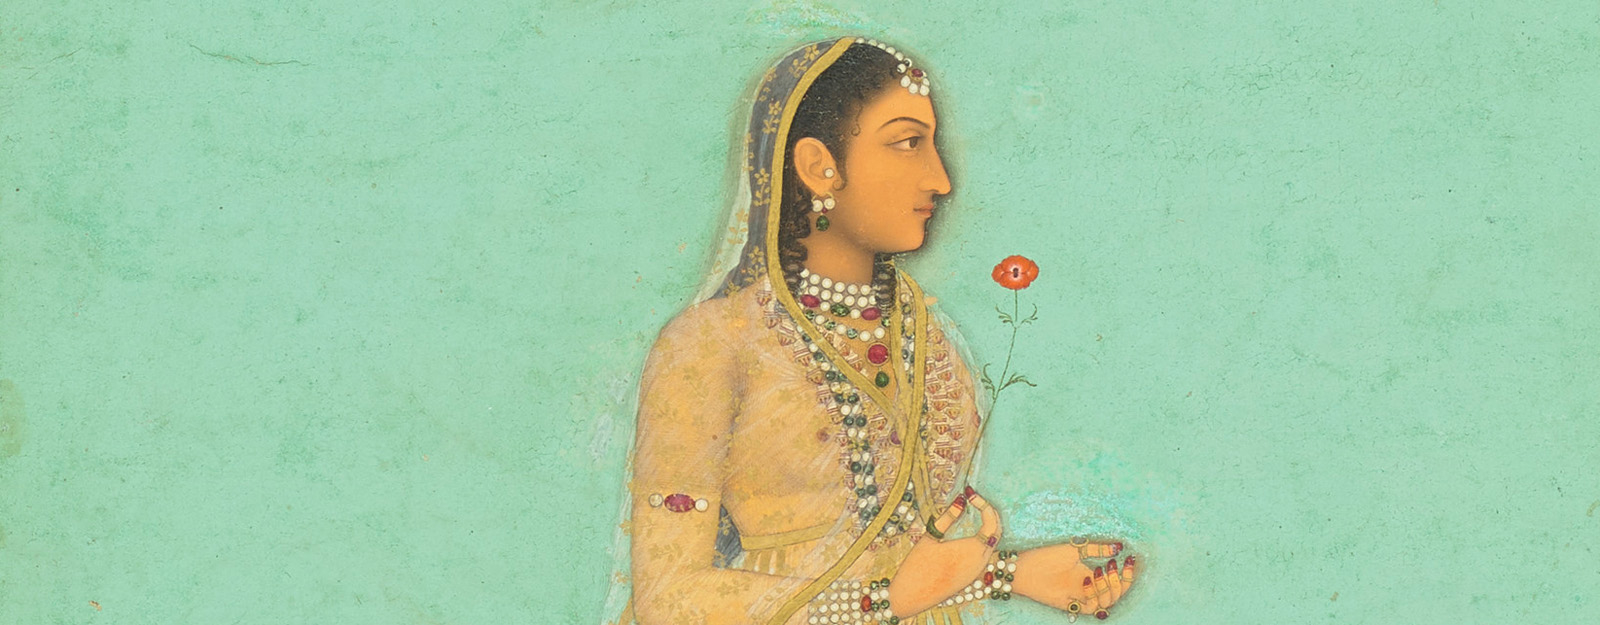 Illustration of an Indian woman holding a flower